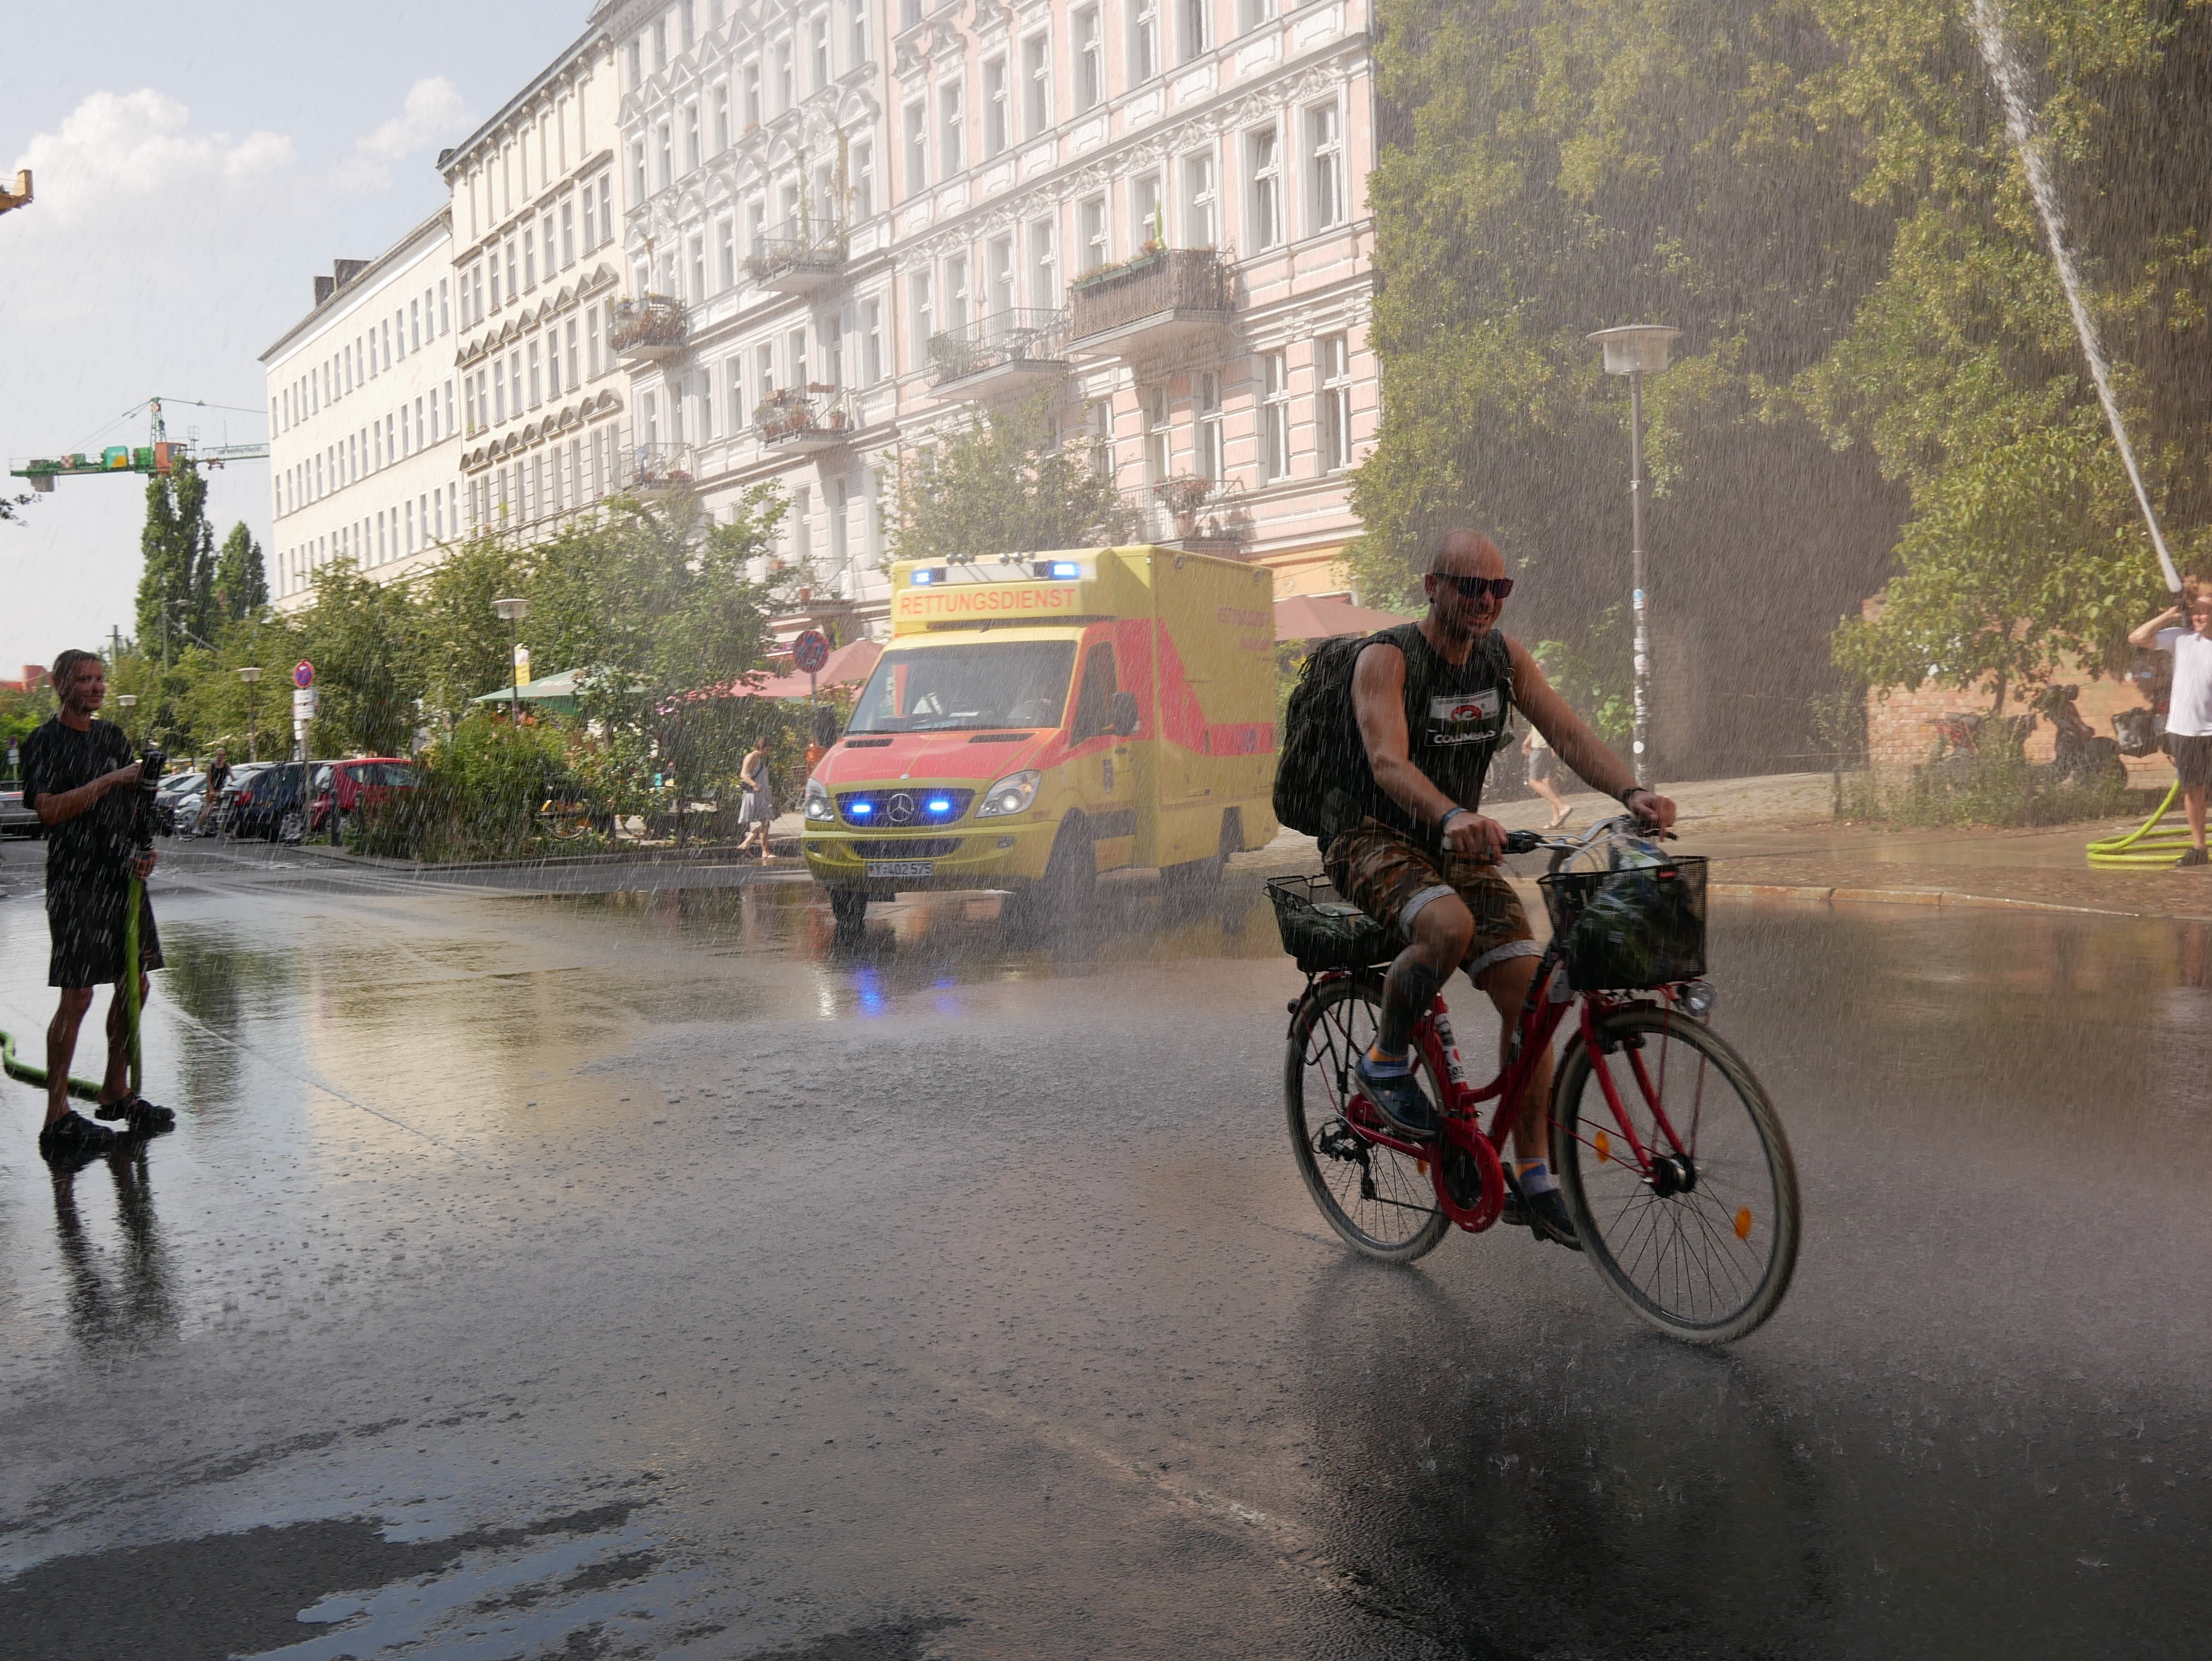 Firefighters blast water in Berlin in mid-August, providing relief from the heat. This is among the few ways to cool off in a city with little air conditioning.